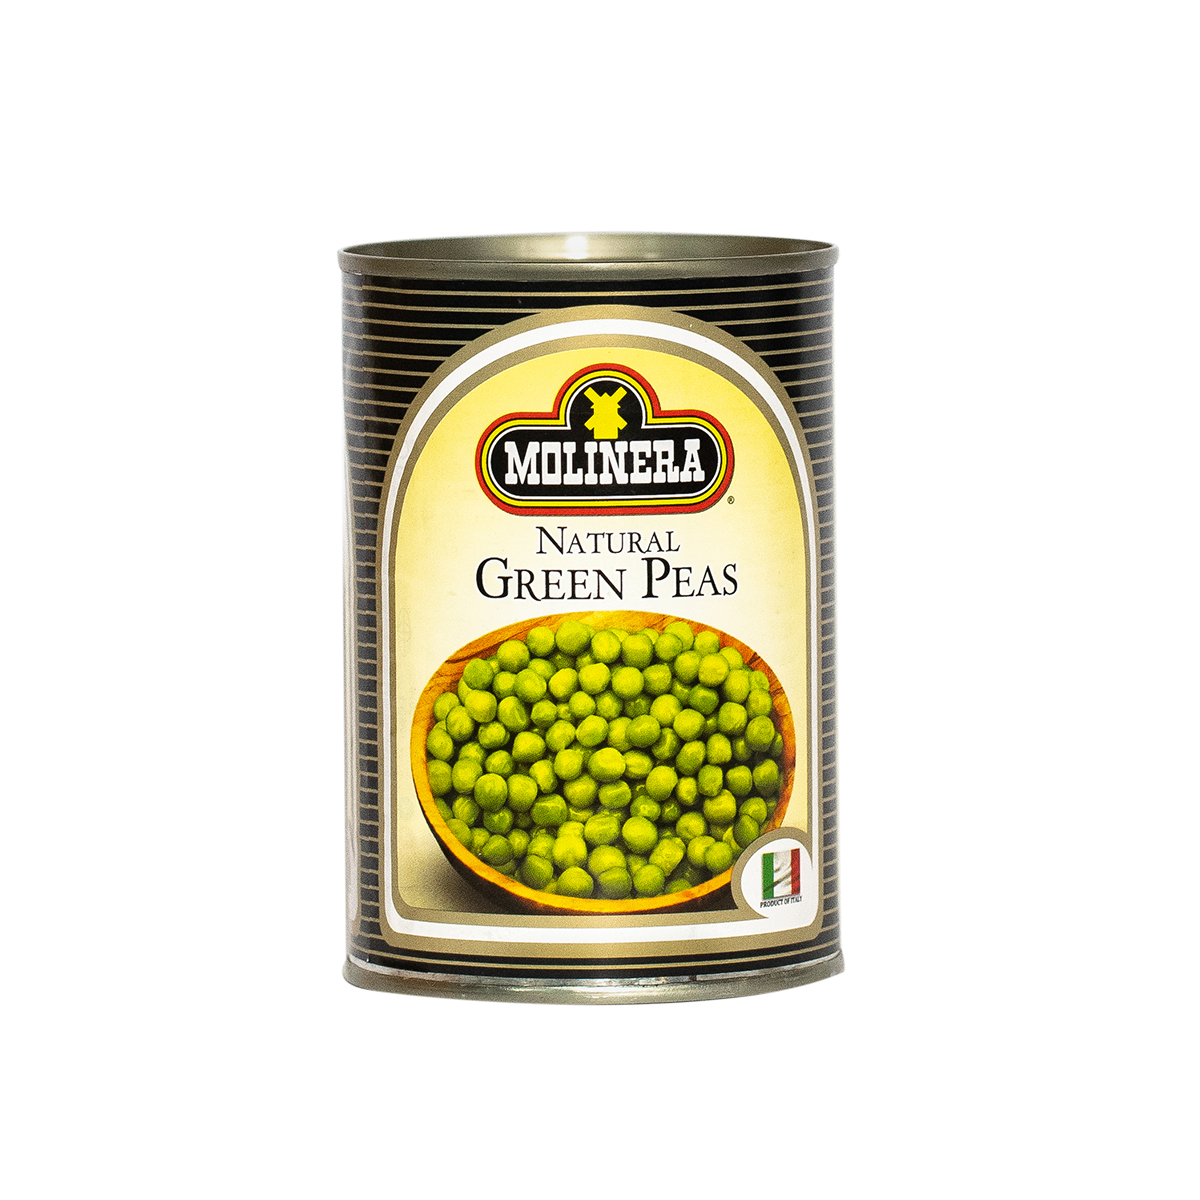 Molinera Natural Green Peas